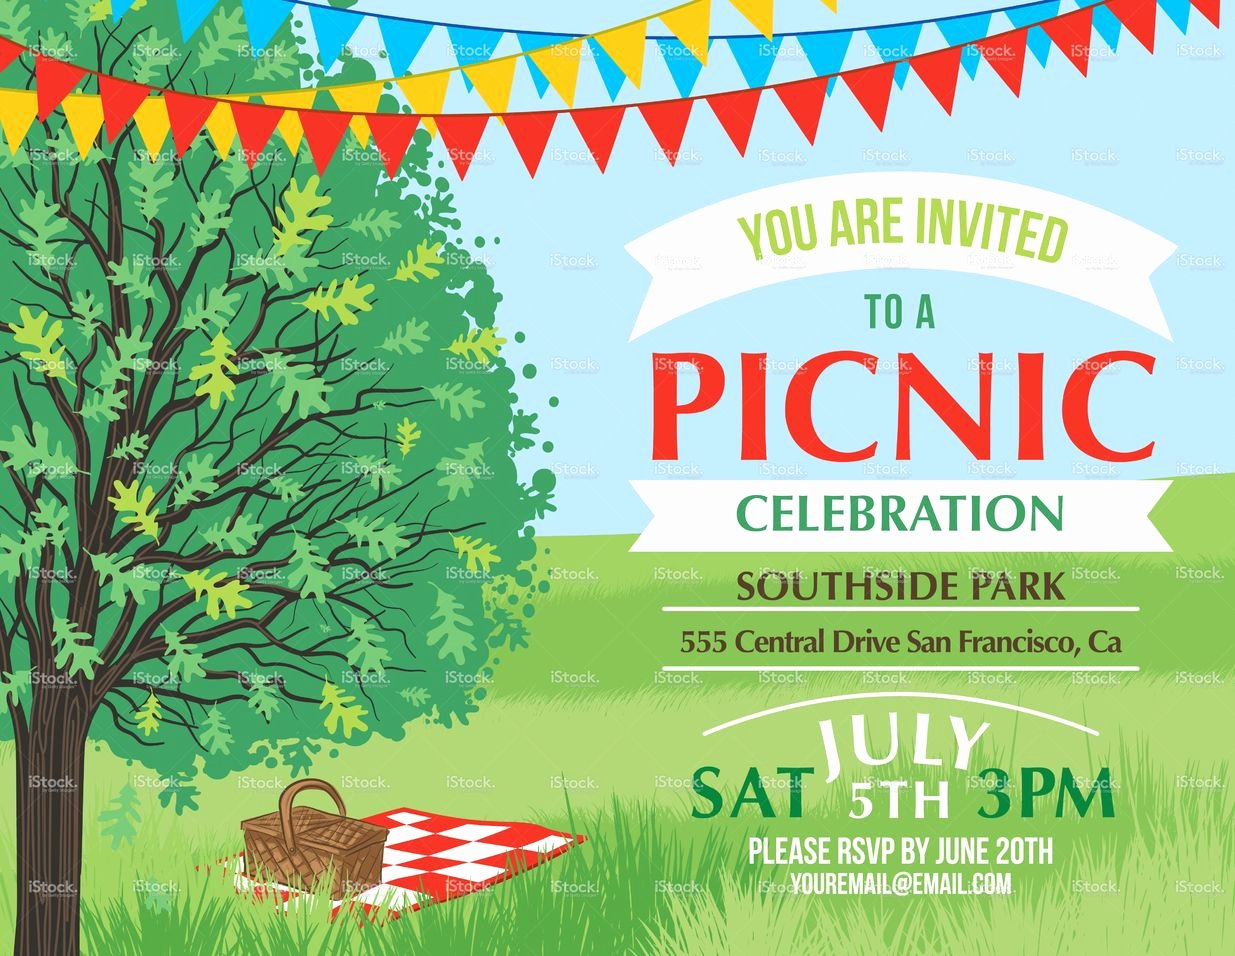 Picnic Flyer Template Free Best Of Summer Picnic and Bbq Invitation Flyer or Template Text